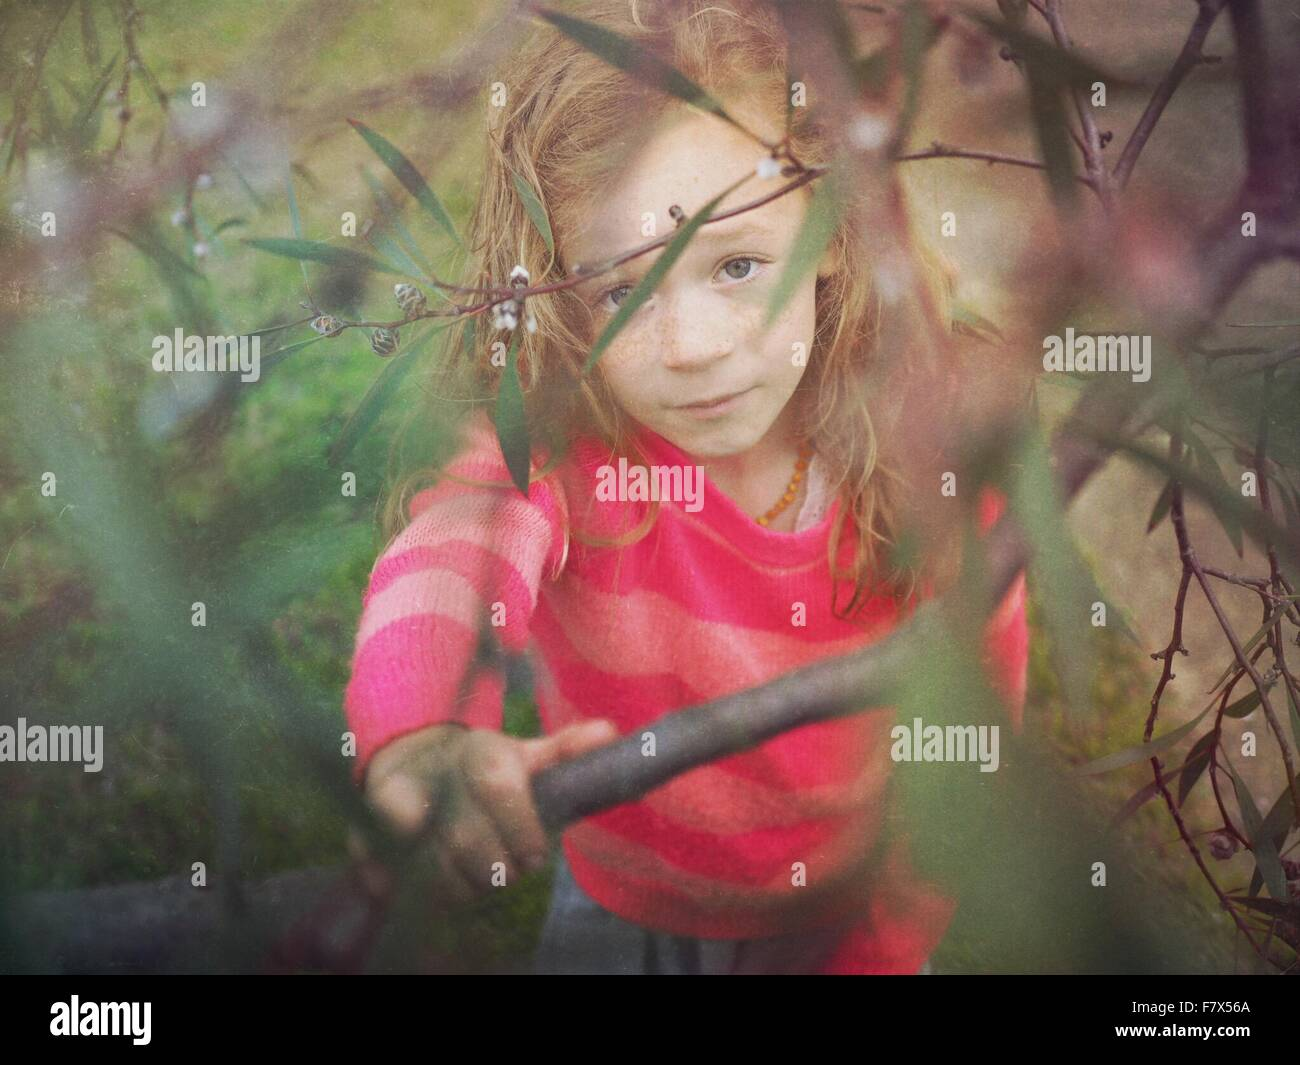 Girl viewed through branches of a tree - Stock Image